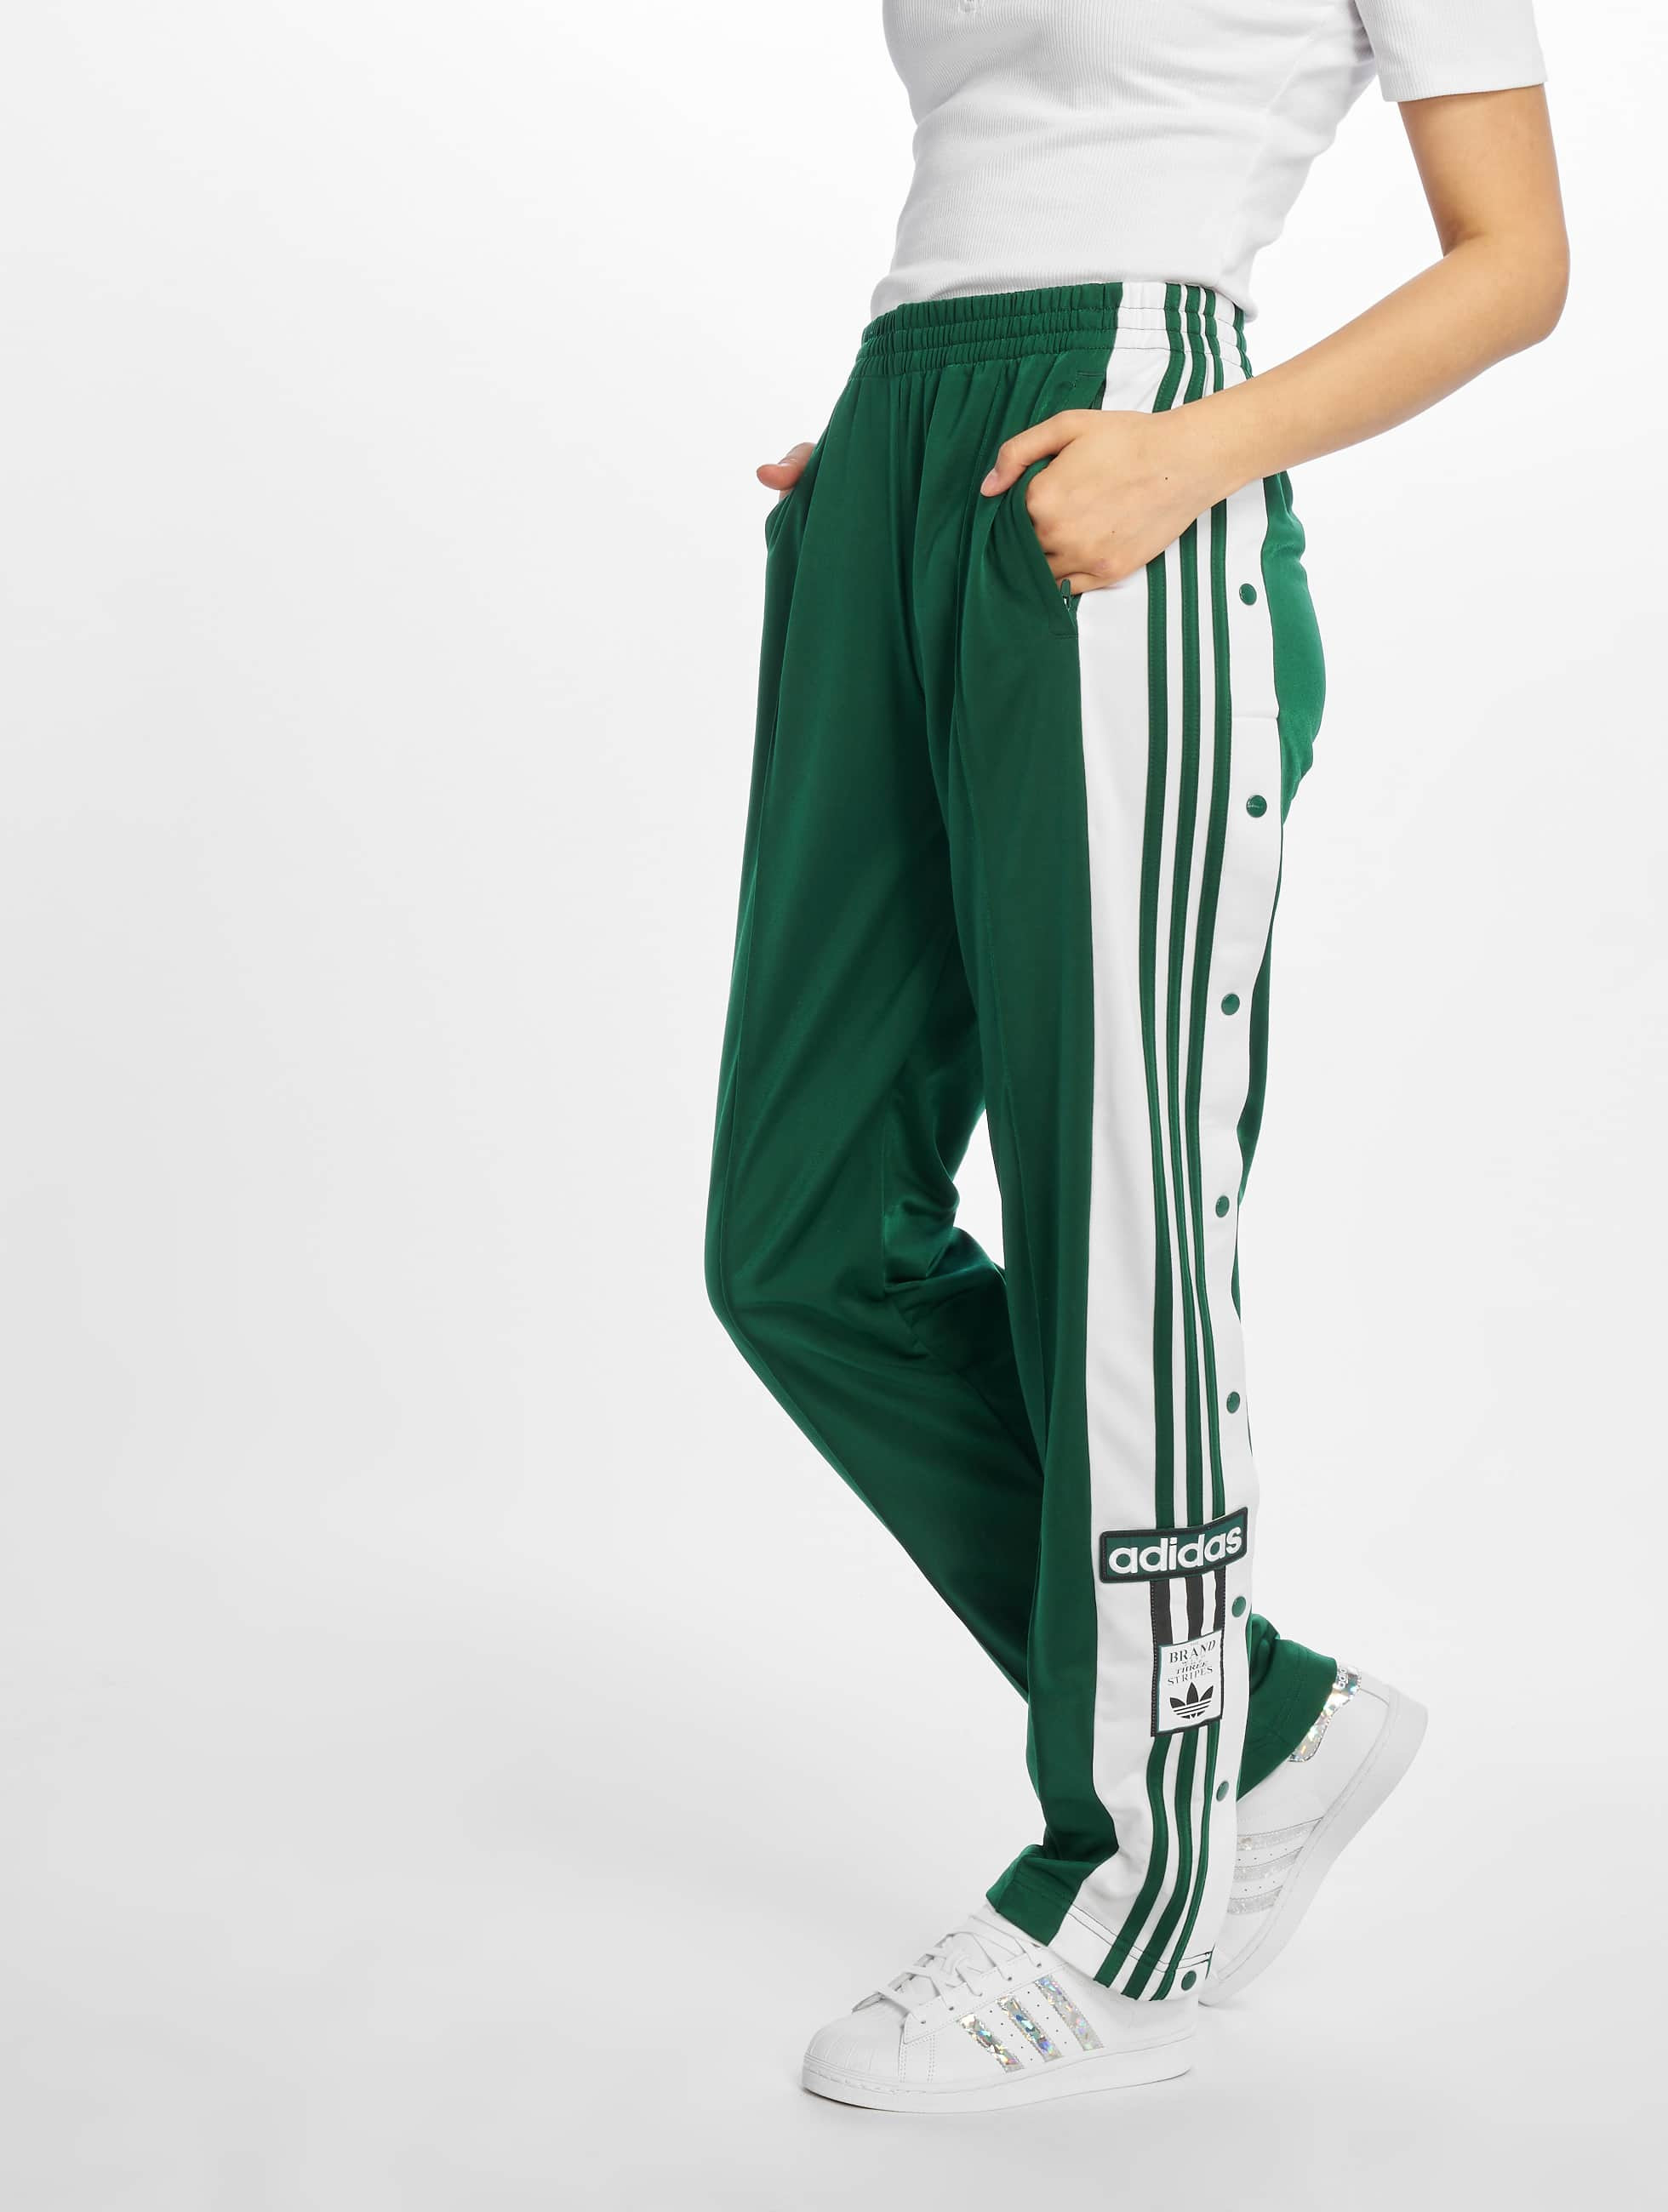 Joggingbroek Groen.Adidas Originals Broek Joggingbroek Adibreak In Groen 543505